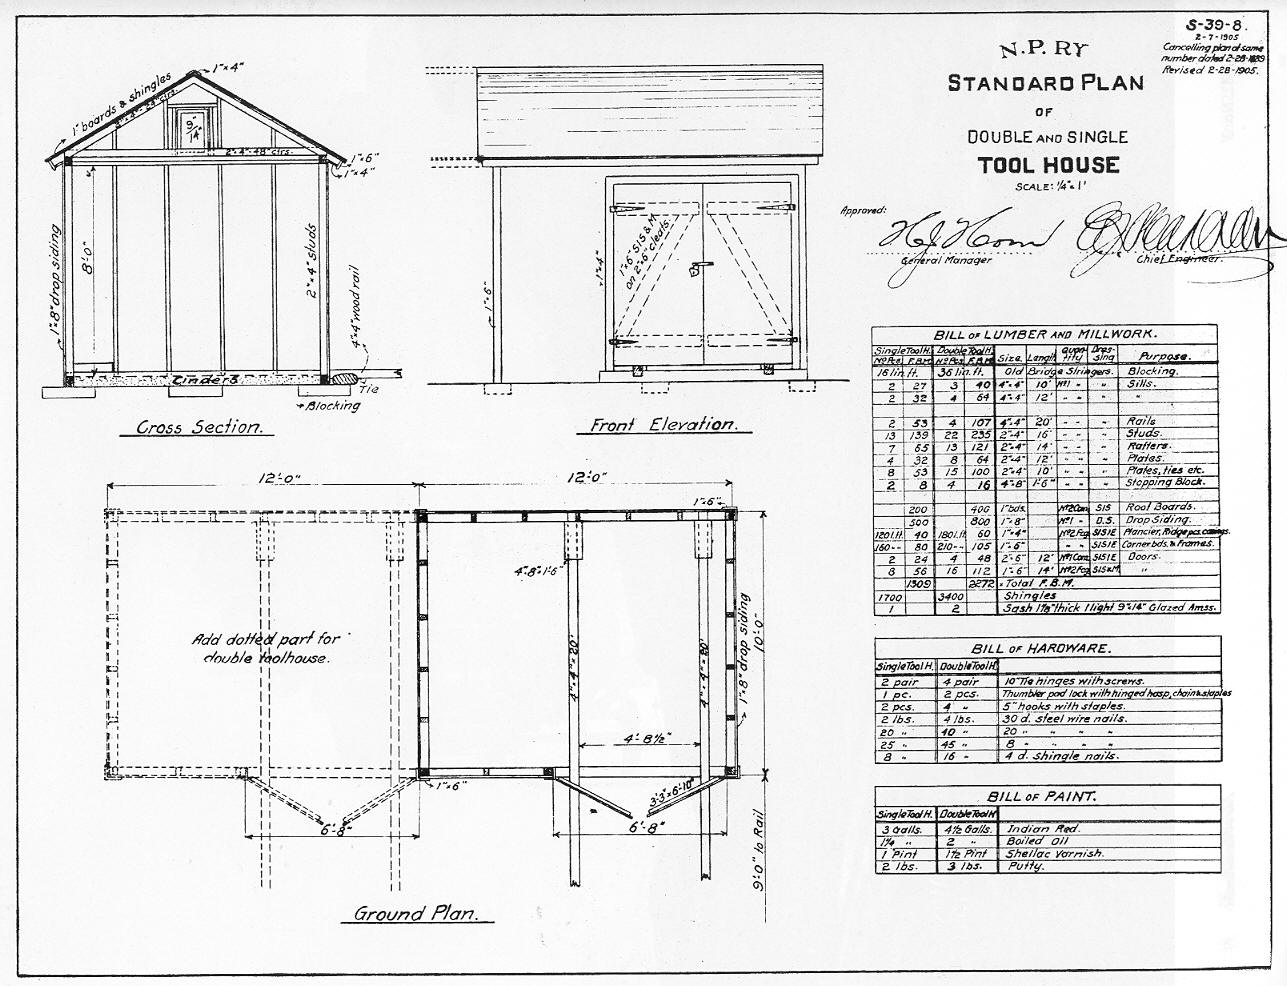 NP Structures & Plans Tool House Double & Single Standard Plan